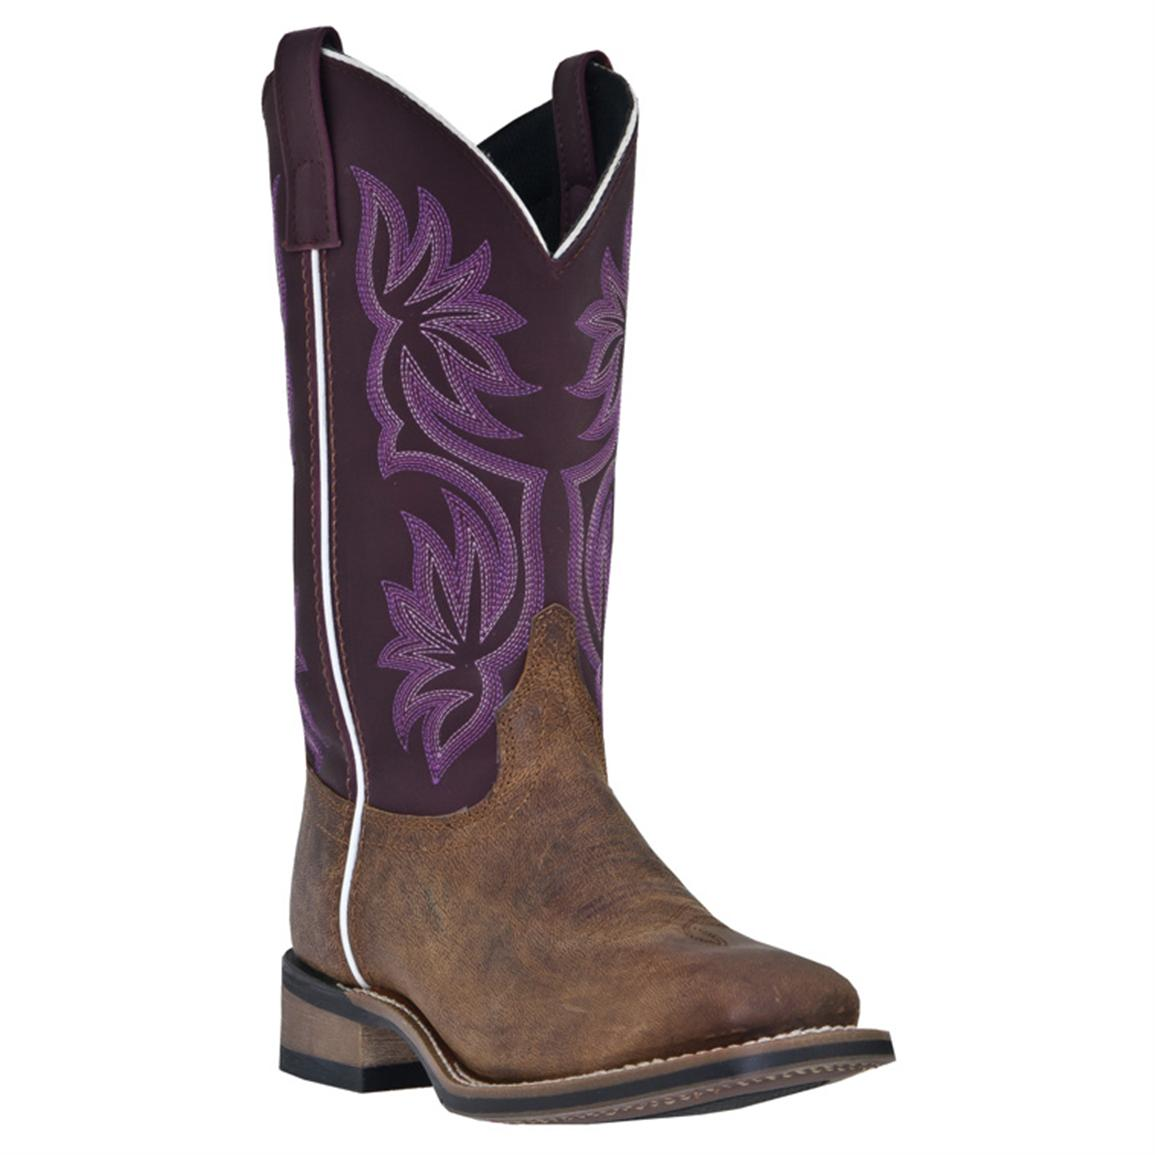 Women's Laredo 11 inch Mesquite Western Boots, Purple / Brown